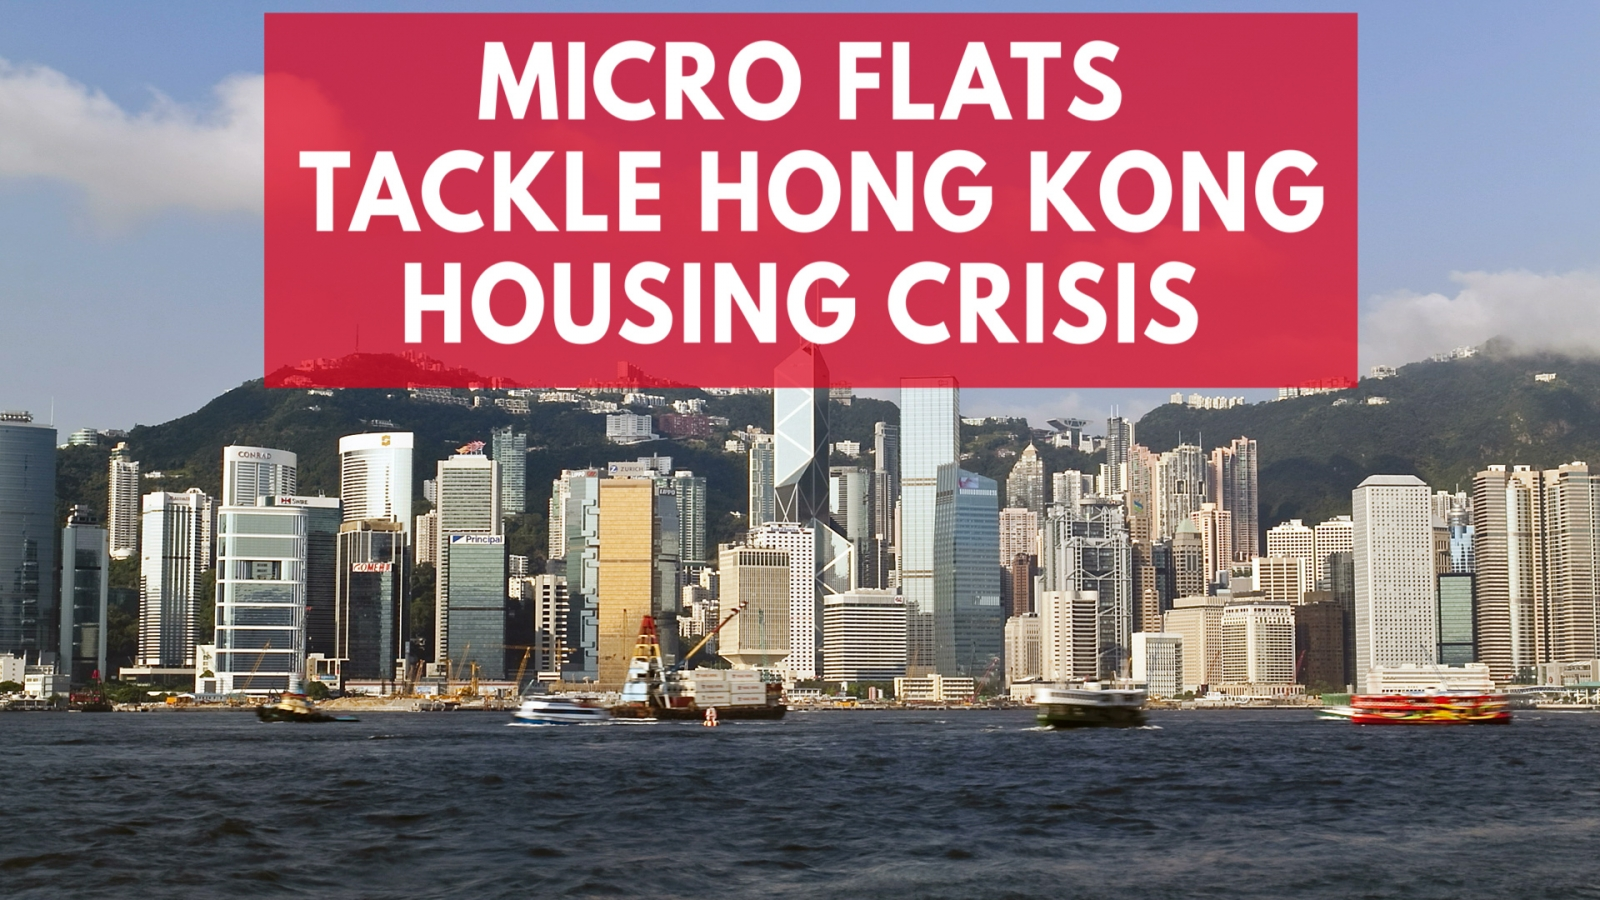 Hong Kong Faces a Housing Crisis Amid Micro Flat Popularity